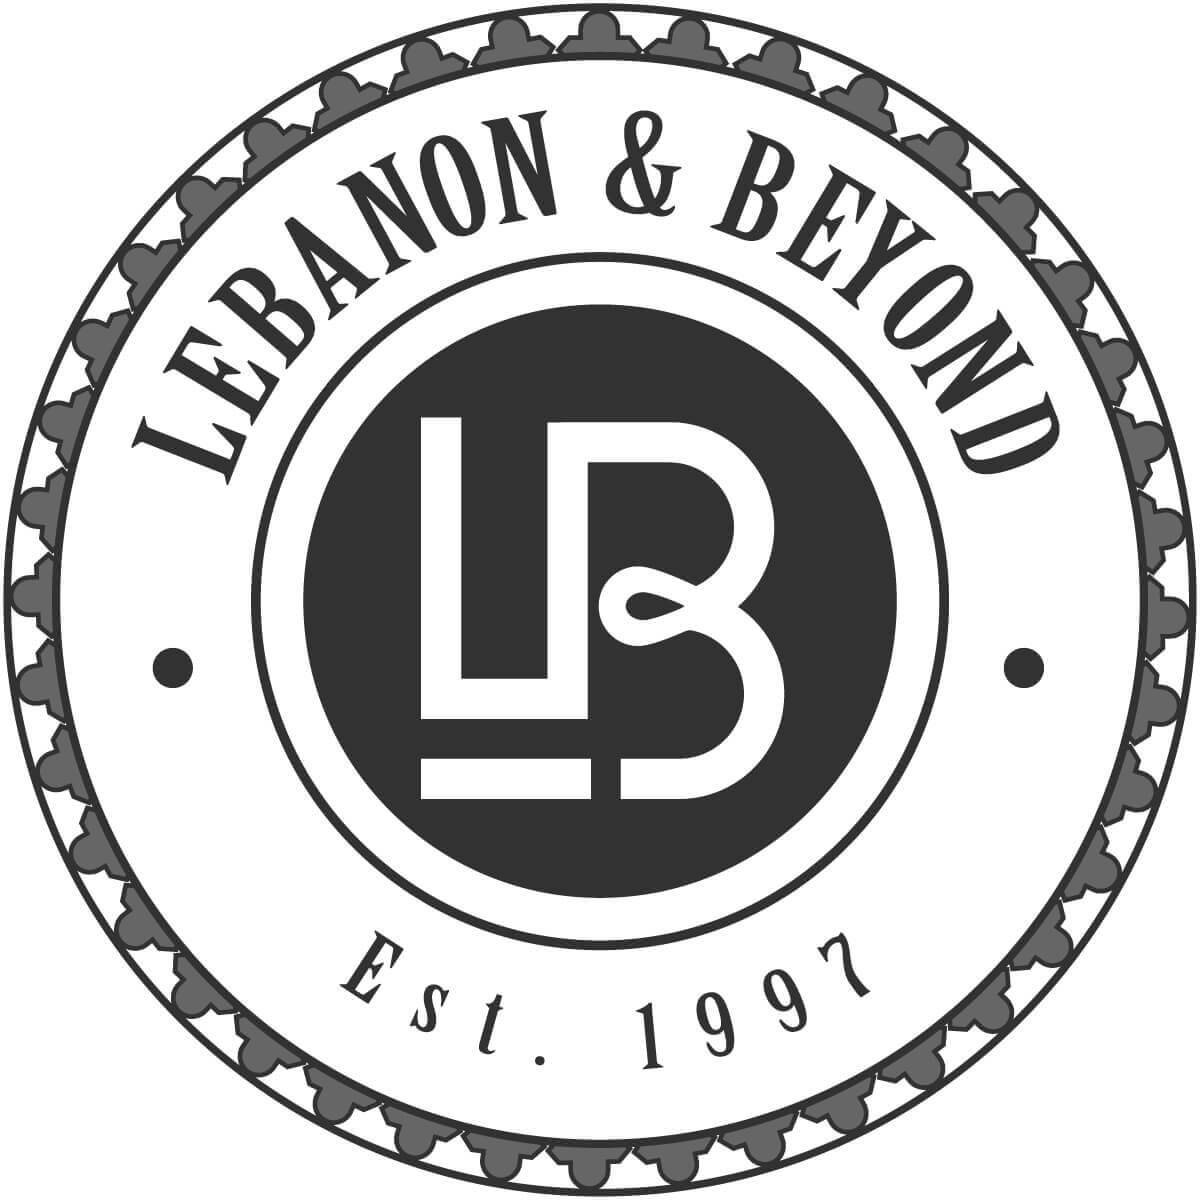 Lebanon and  Beyond Restaurant